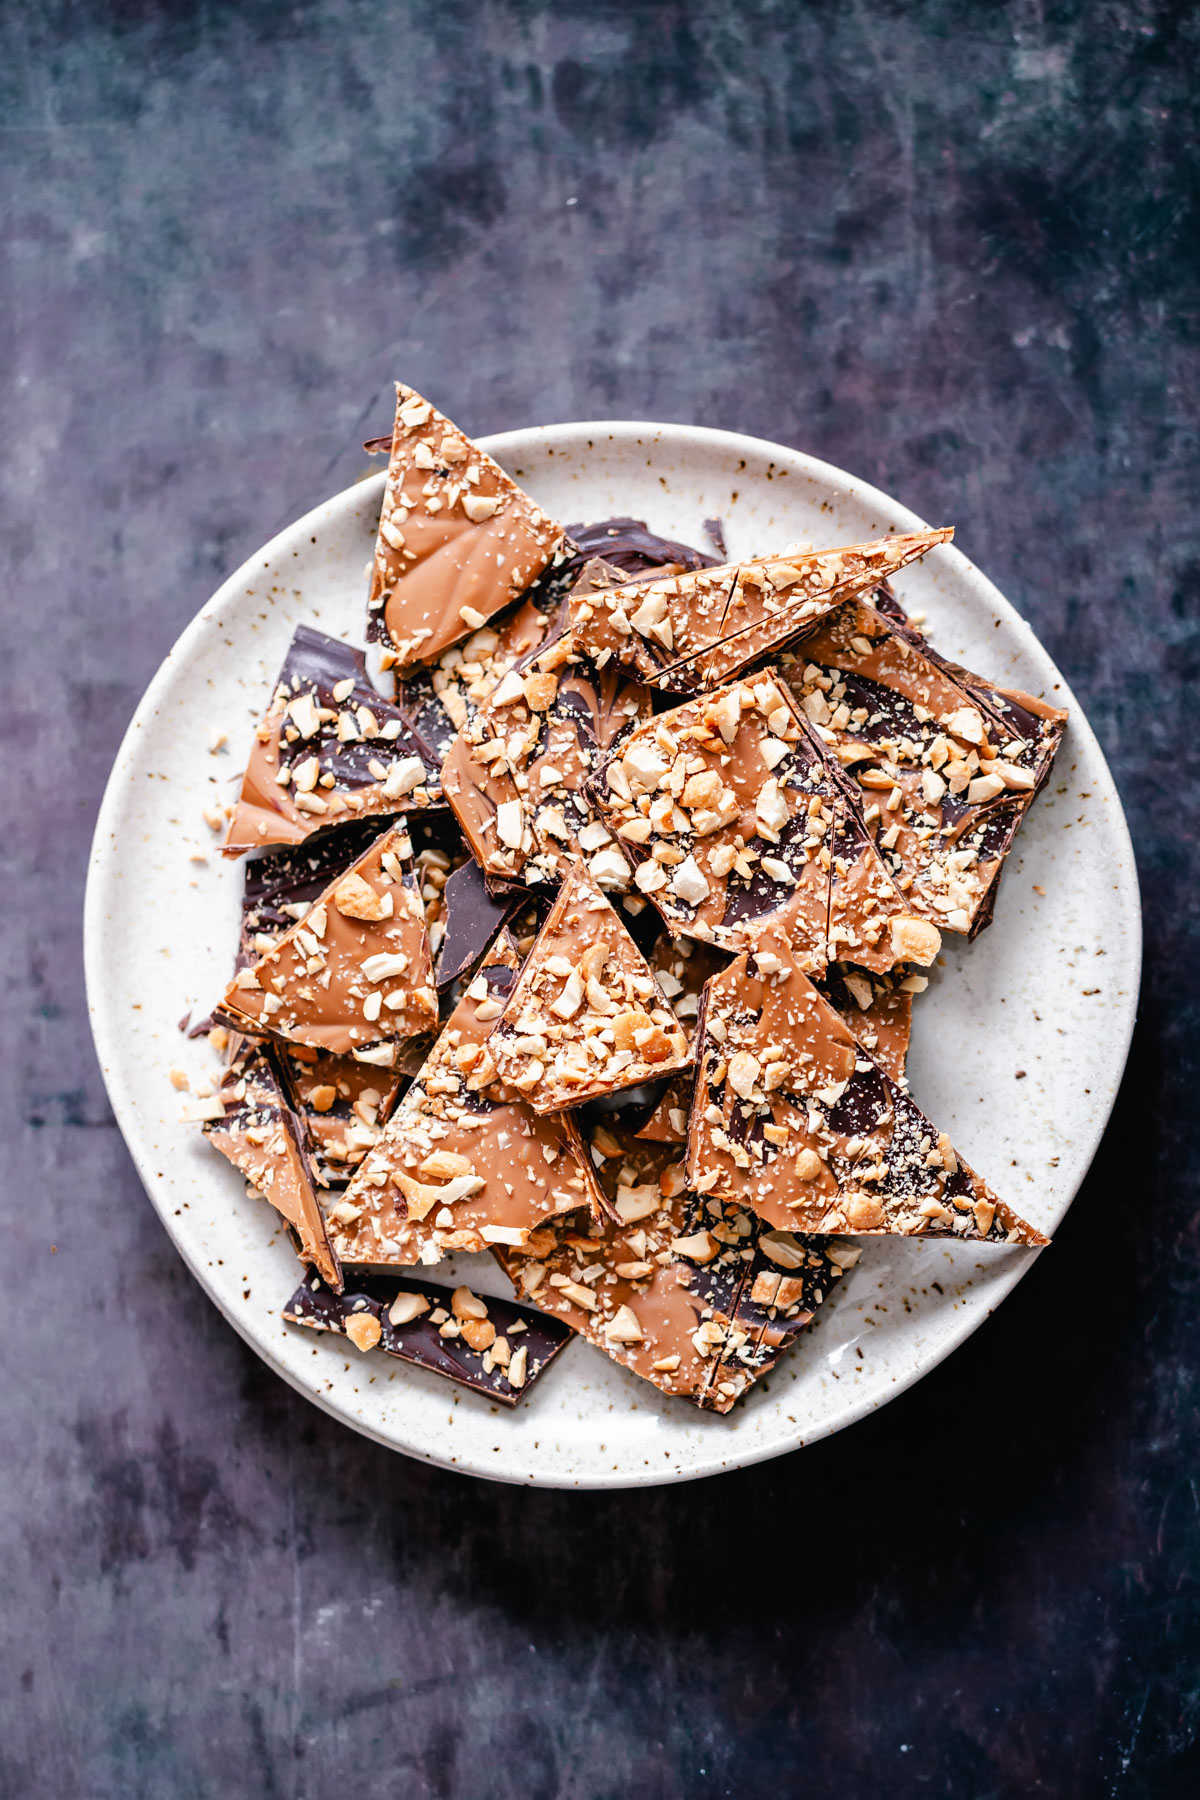 vegan dark chocolate and peanut butter bark with chopped peanuts on a white plate